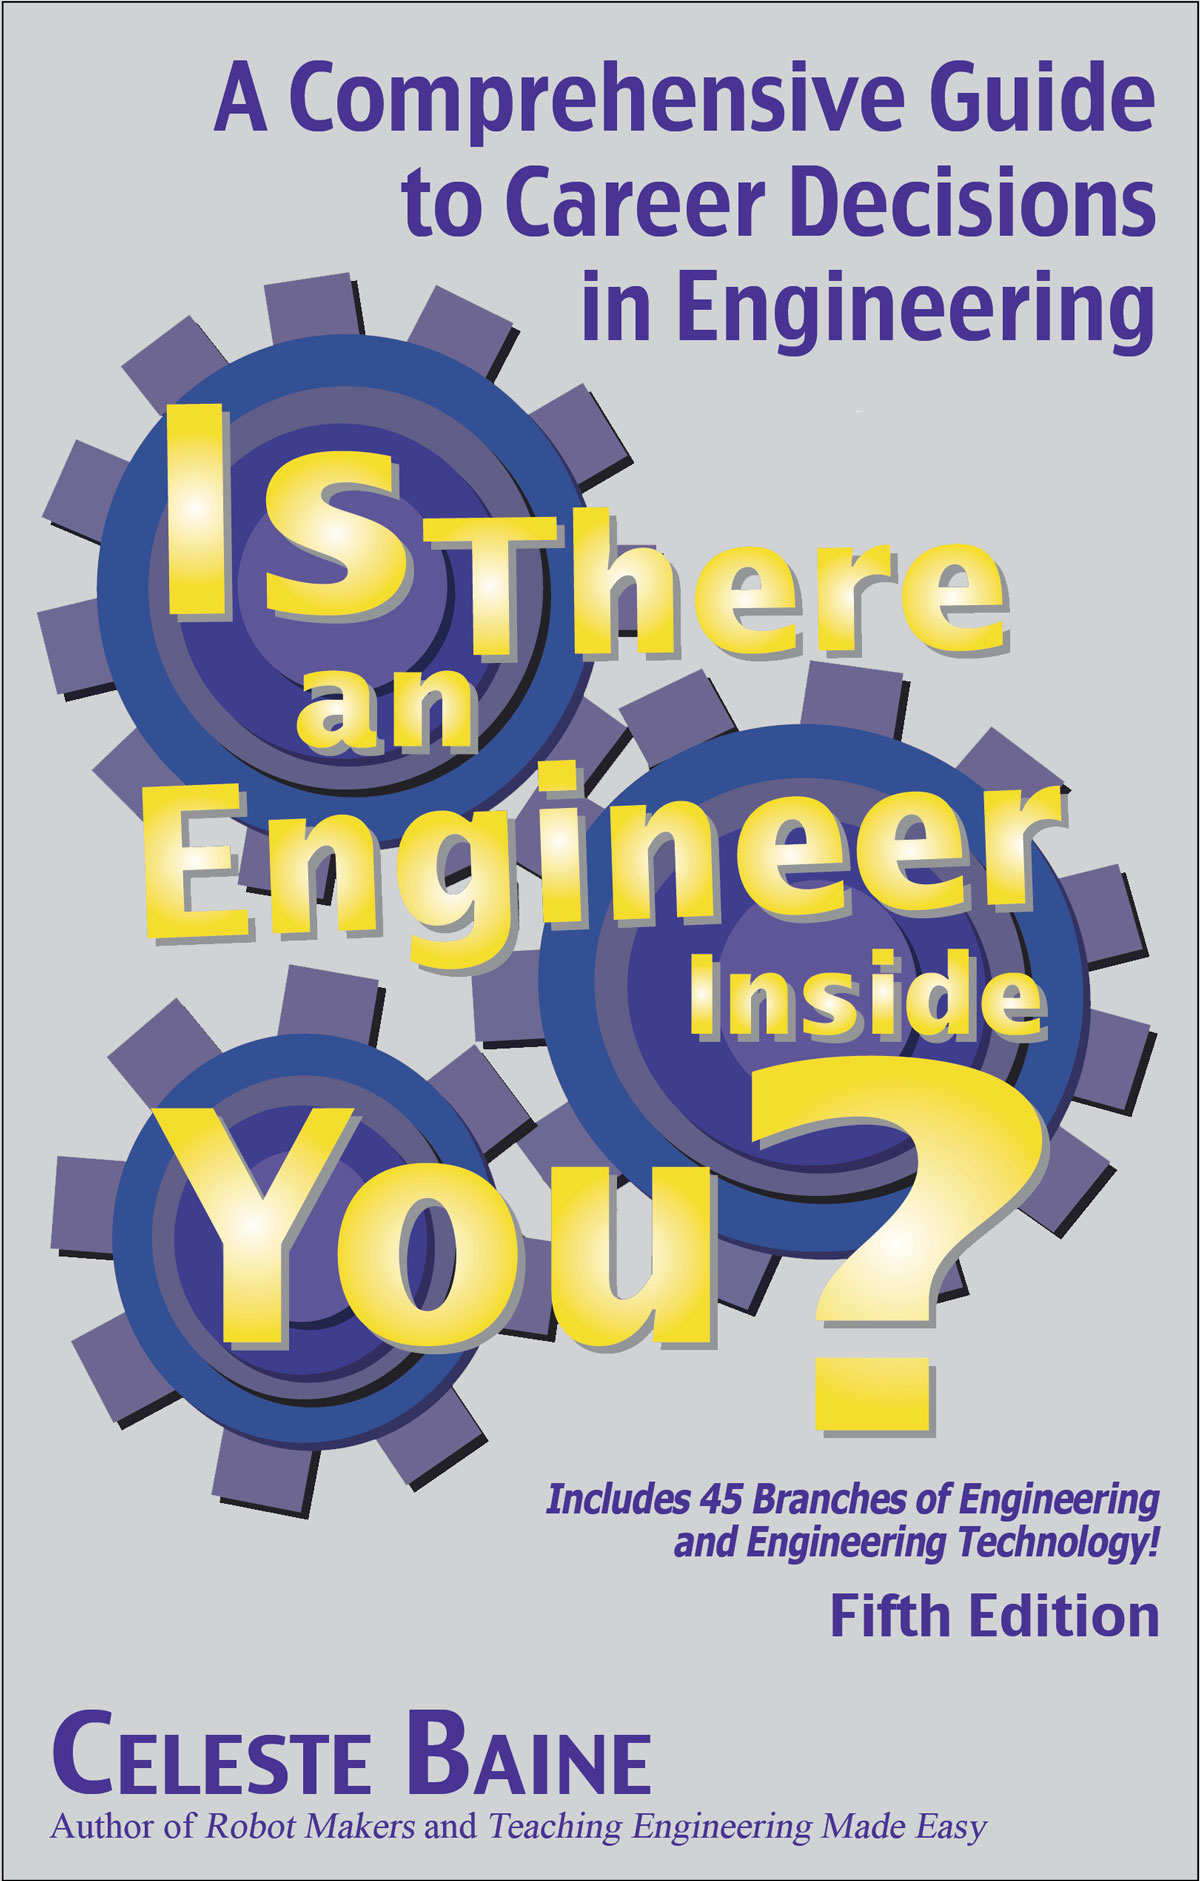 Give this book to every student who wants to study engineering or engineering technology!